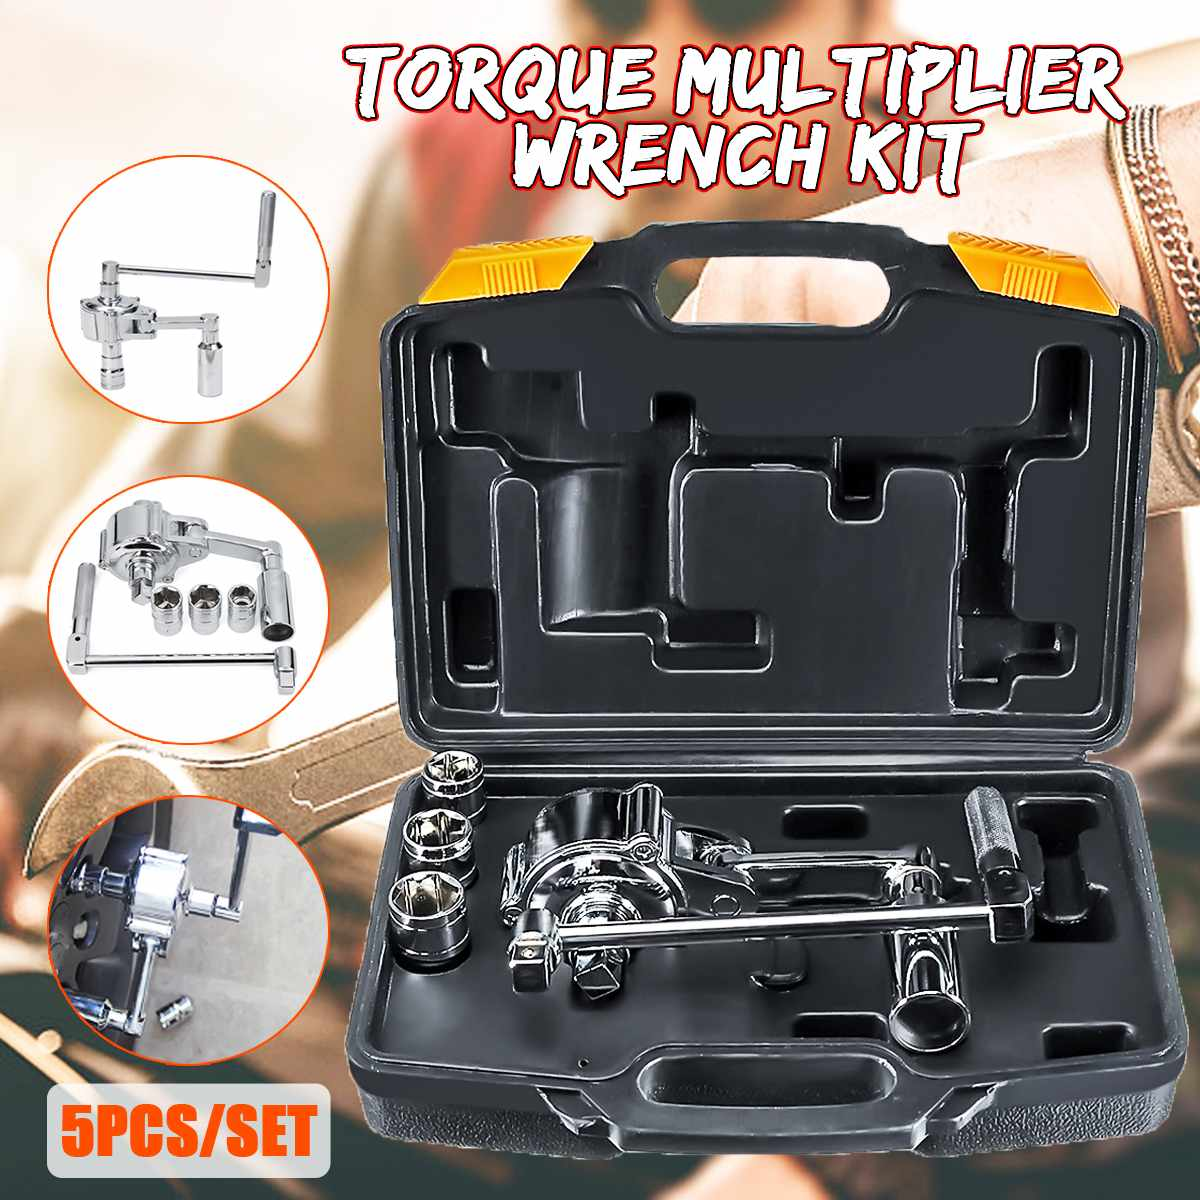 Autoleader Torque Multiplier Wrench Lug Nut Remover 1/2 Drive Socket 17 19 21mm Tire Change